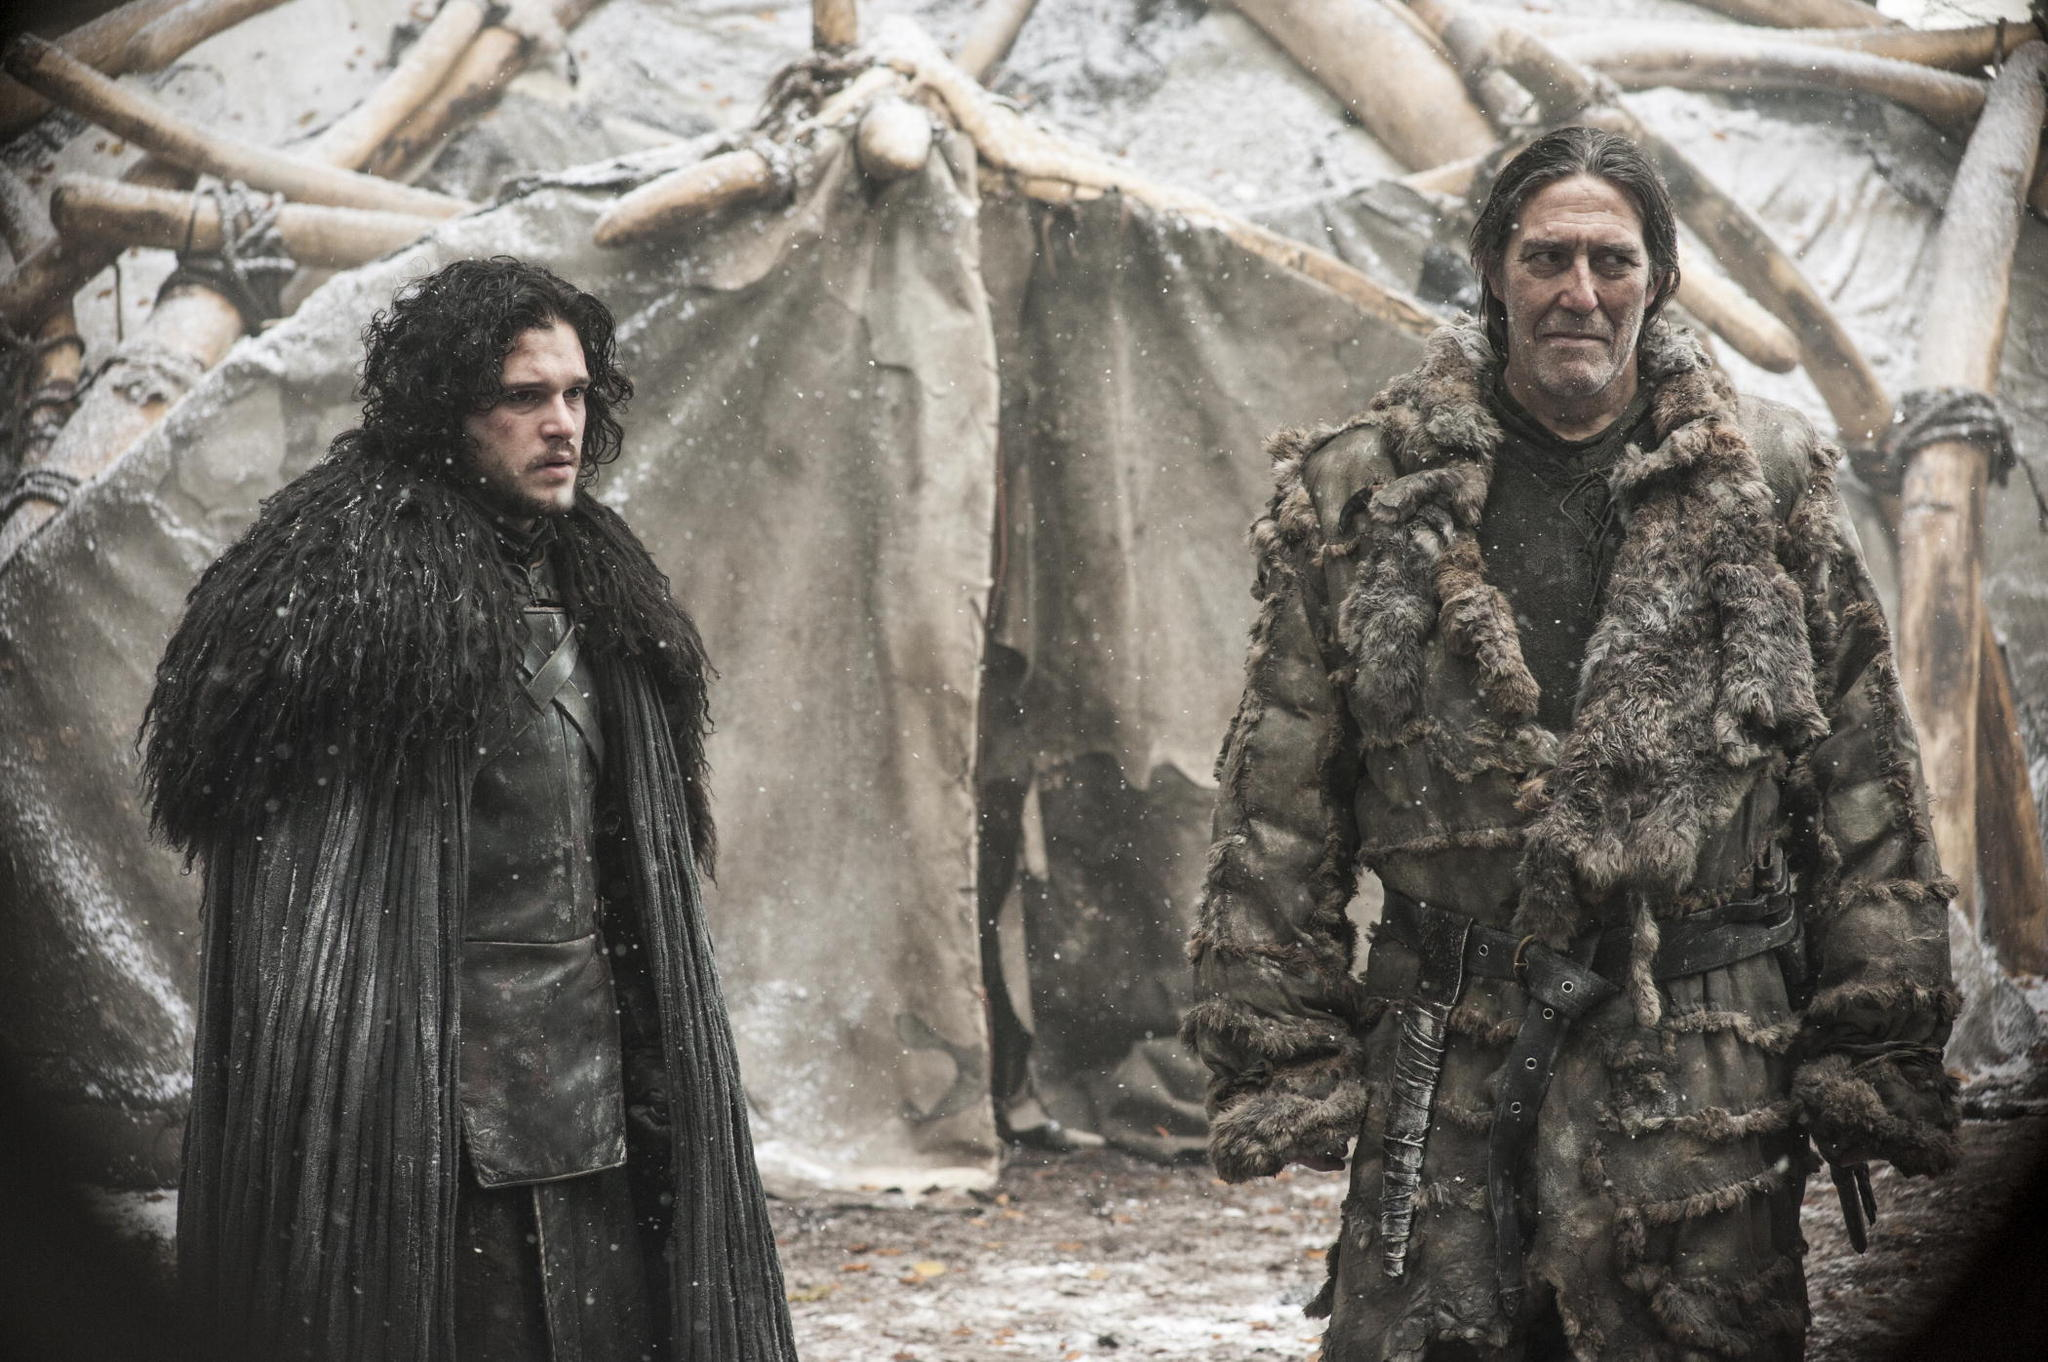 Il trono di spade: Kit Harington e Ciaran Hinds nell'episodio The Children